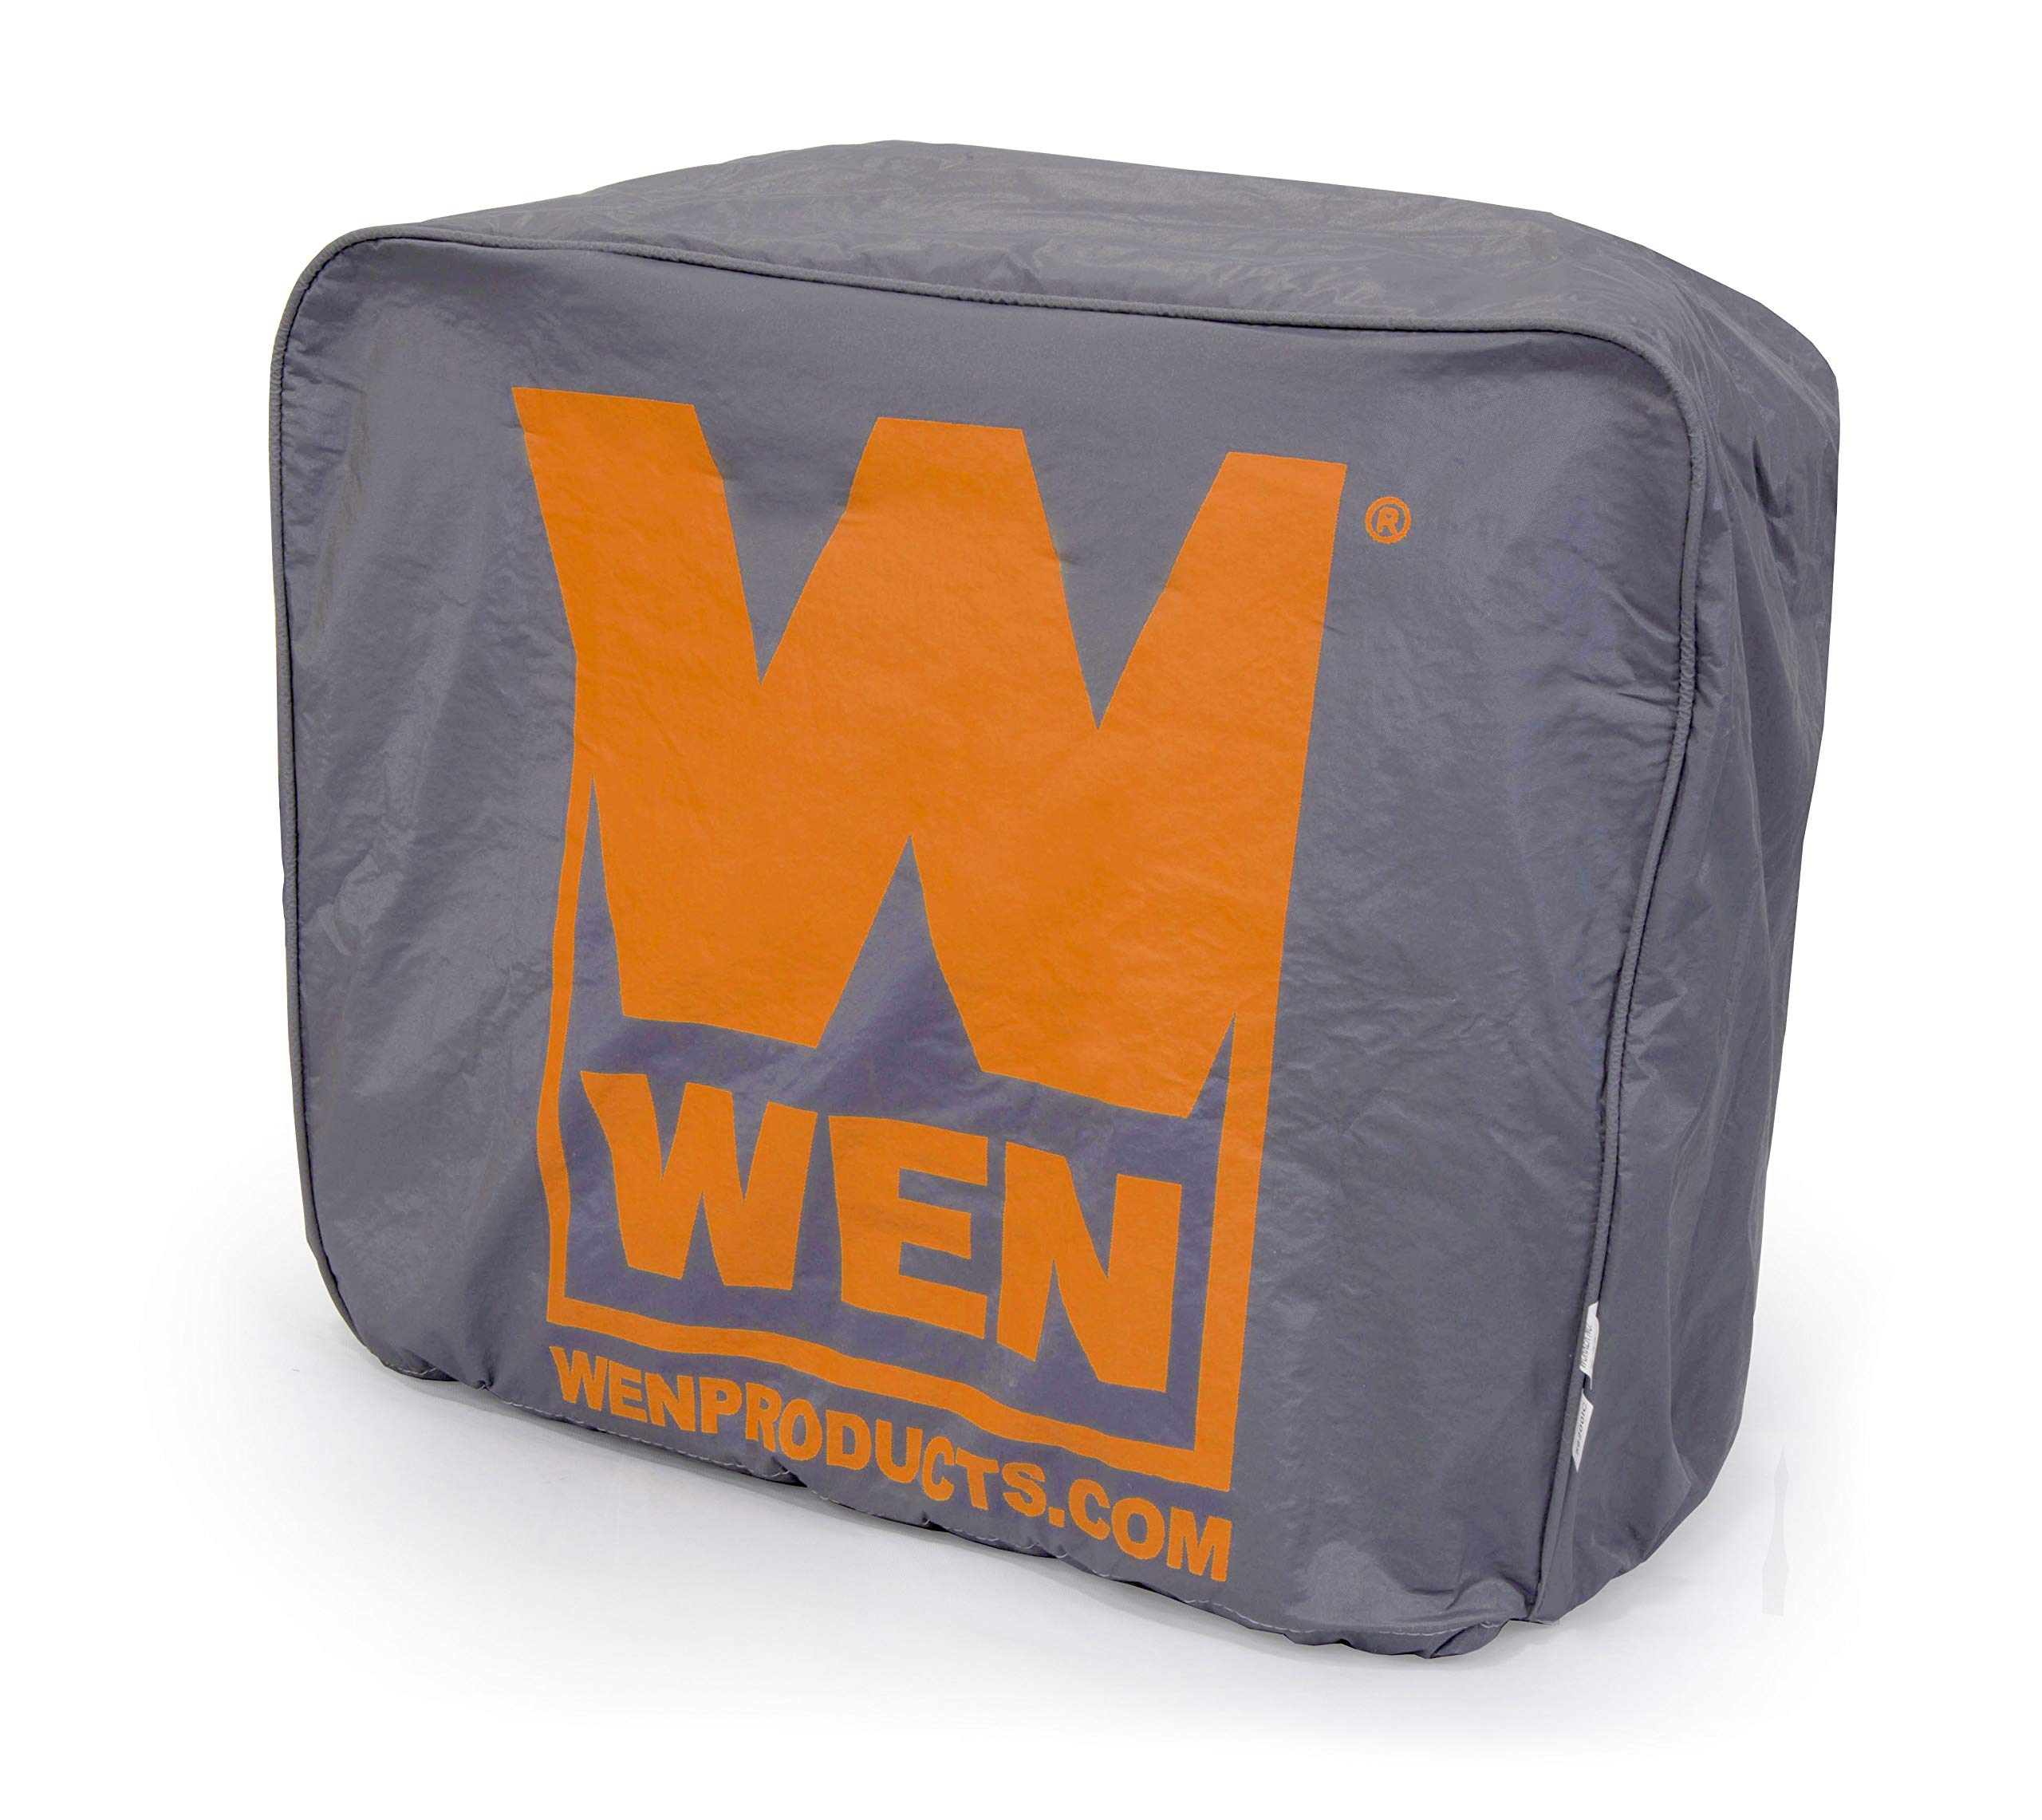 WEN 56200iC Universal Weatherproof Inverter Generator Cover, Medium by WEN